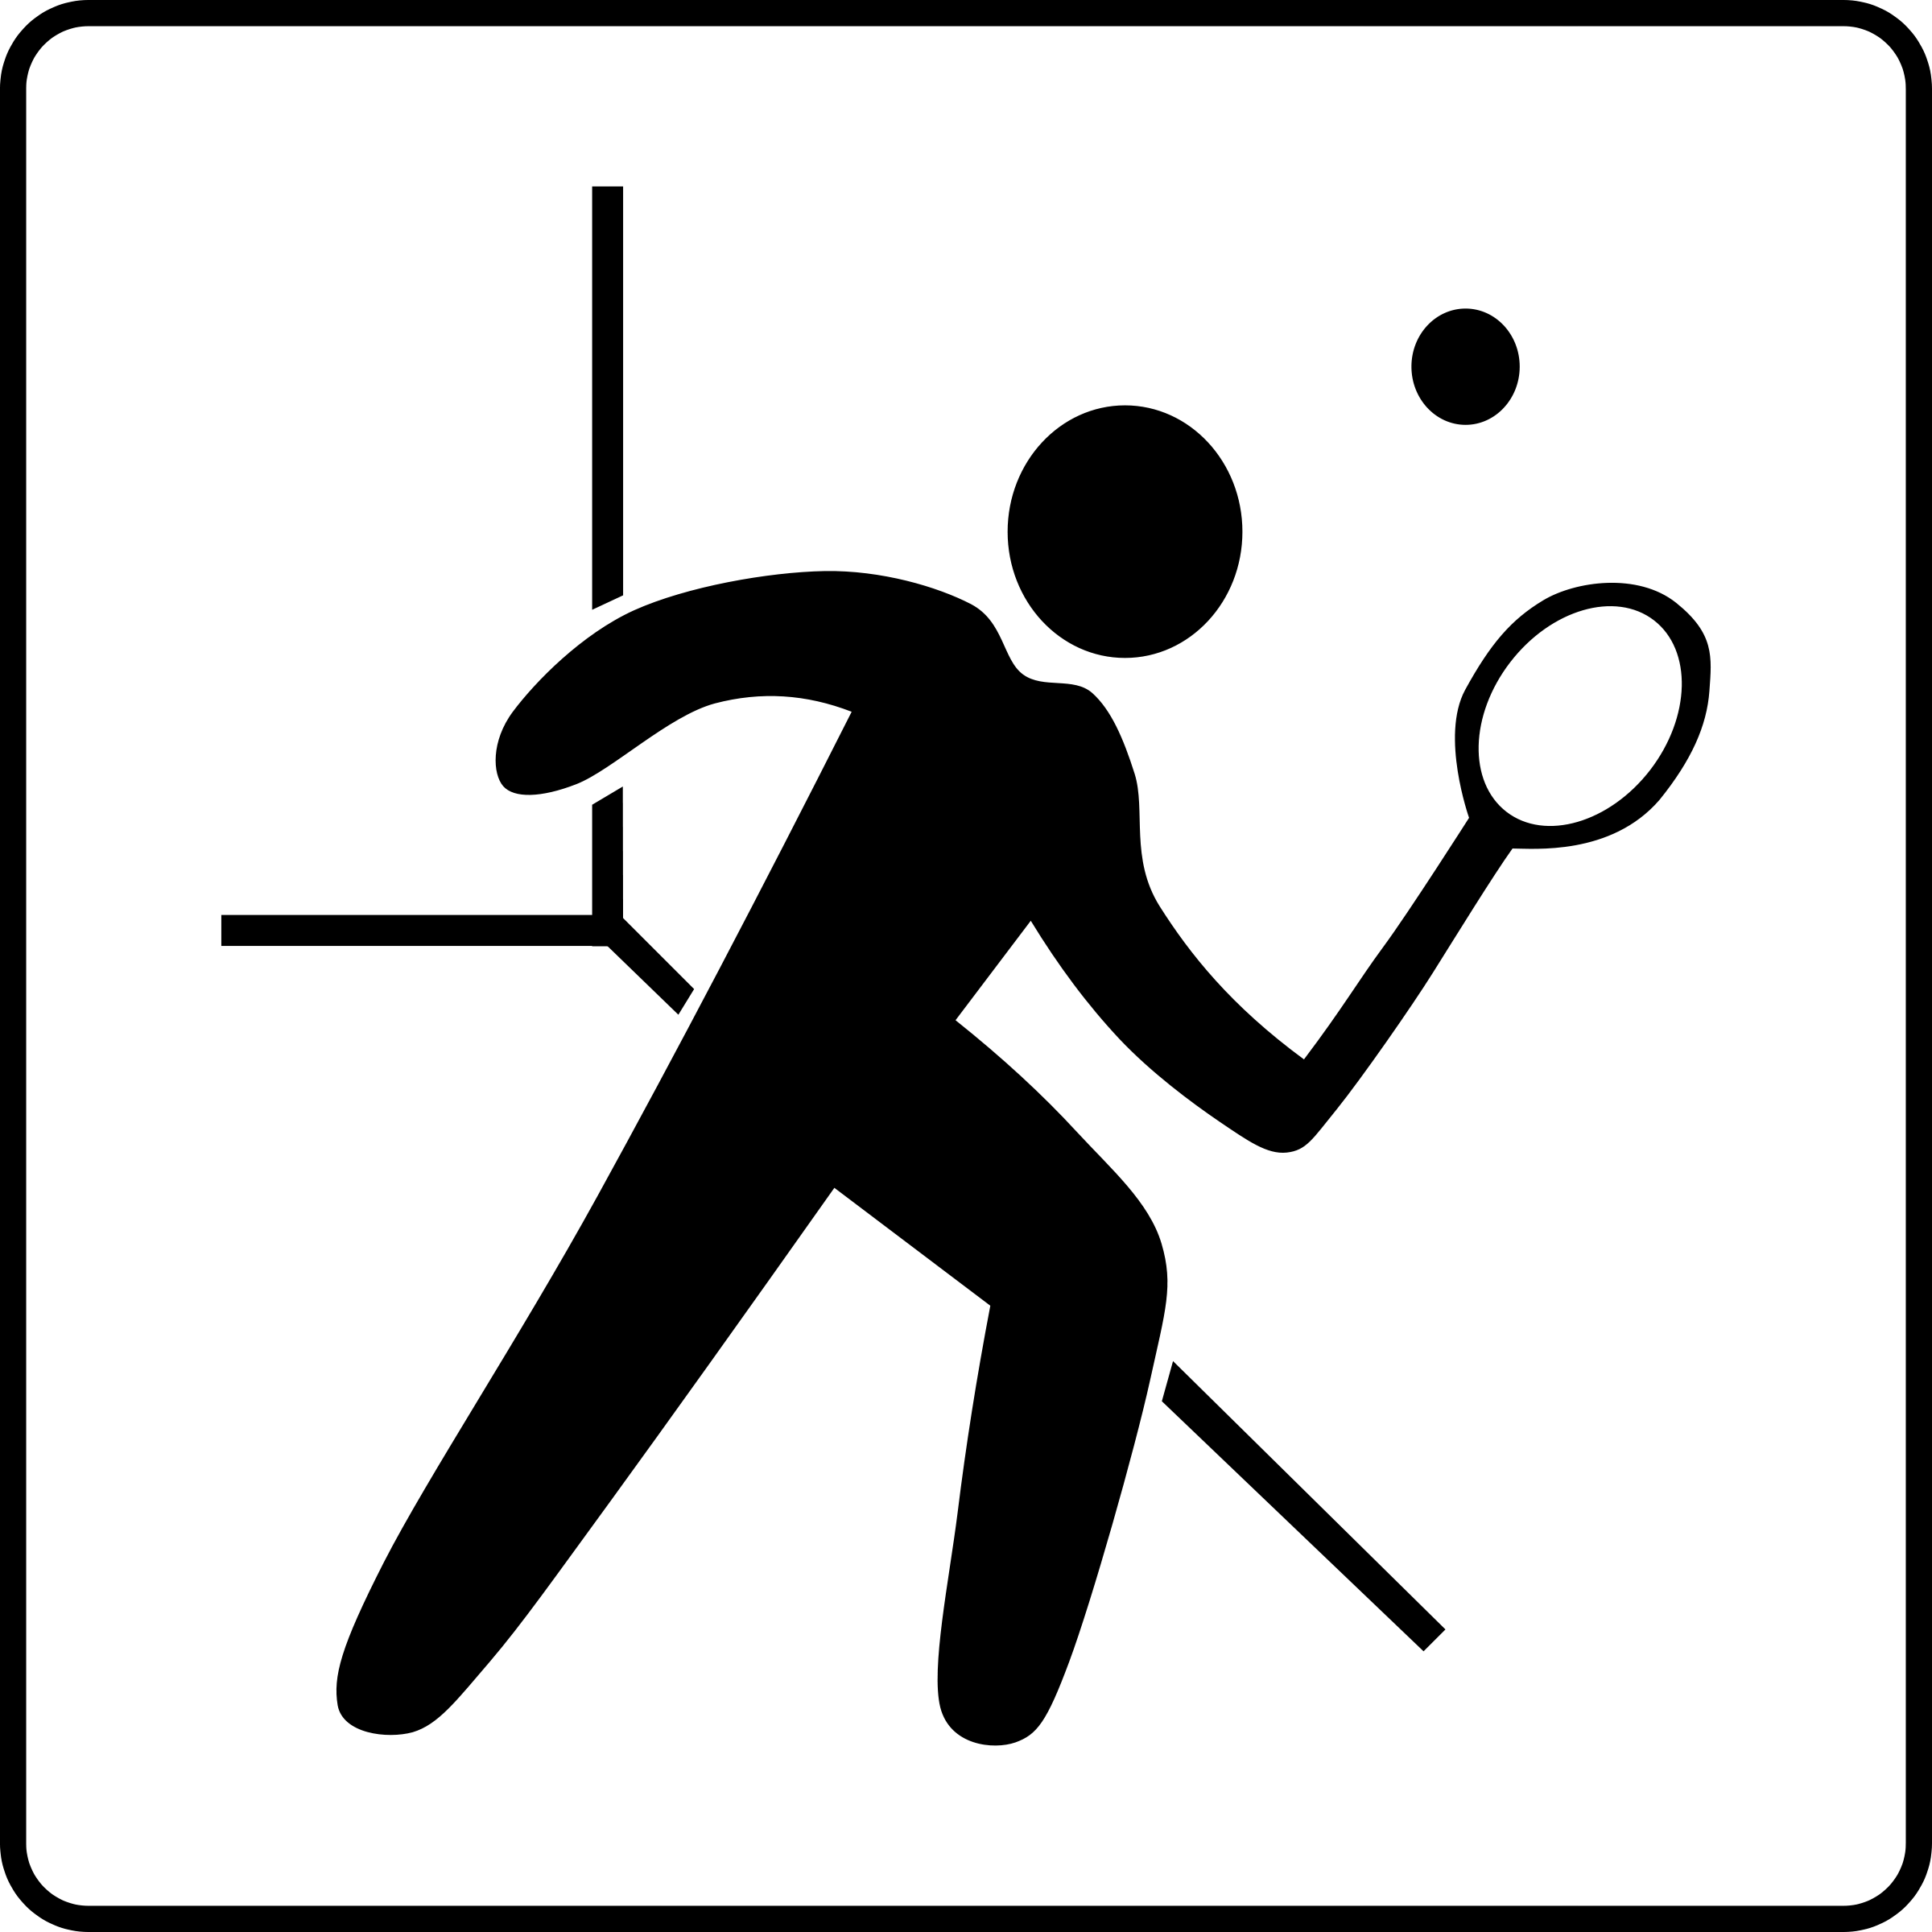 Sports number 44 clipart.